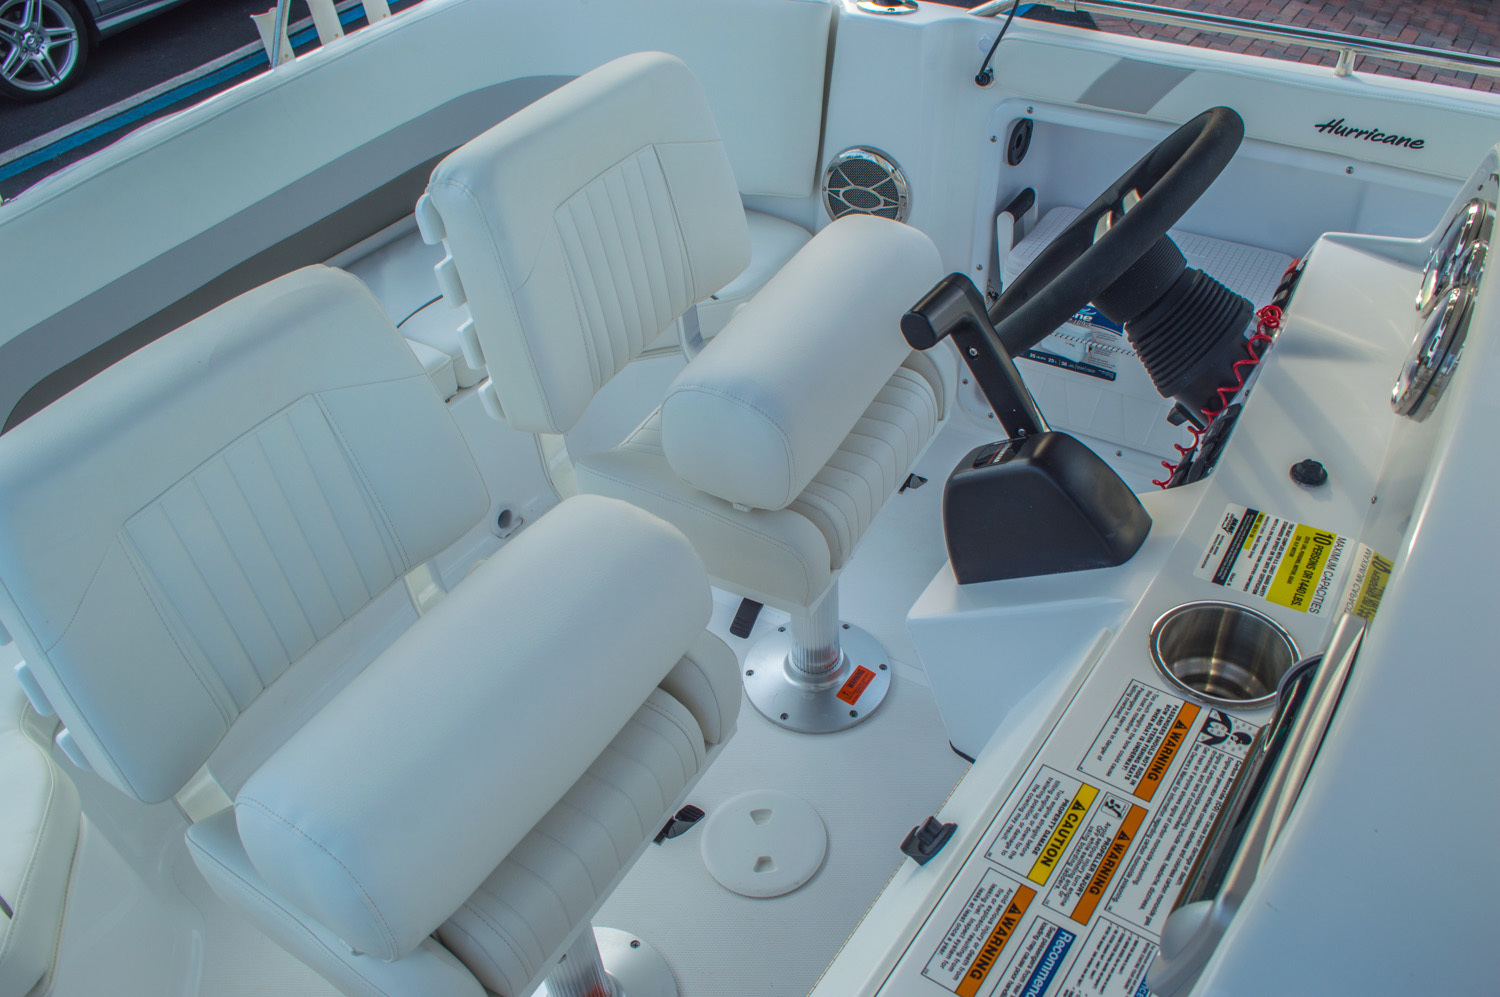 Thumbnail 20 for New 2016 Hurricane CC211 Center Consle boat for sale in West Palm Beach, FL